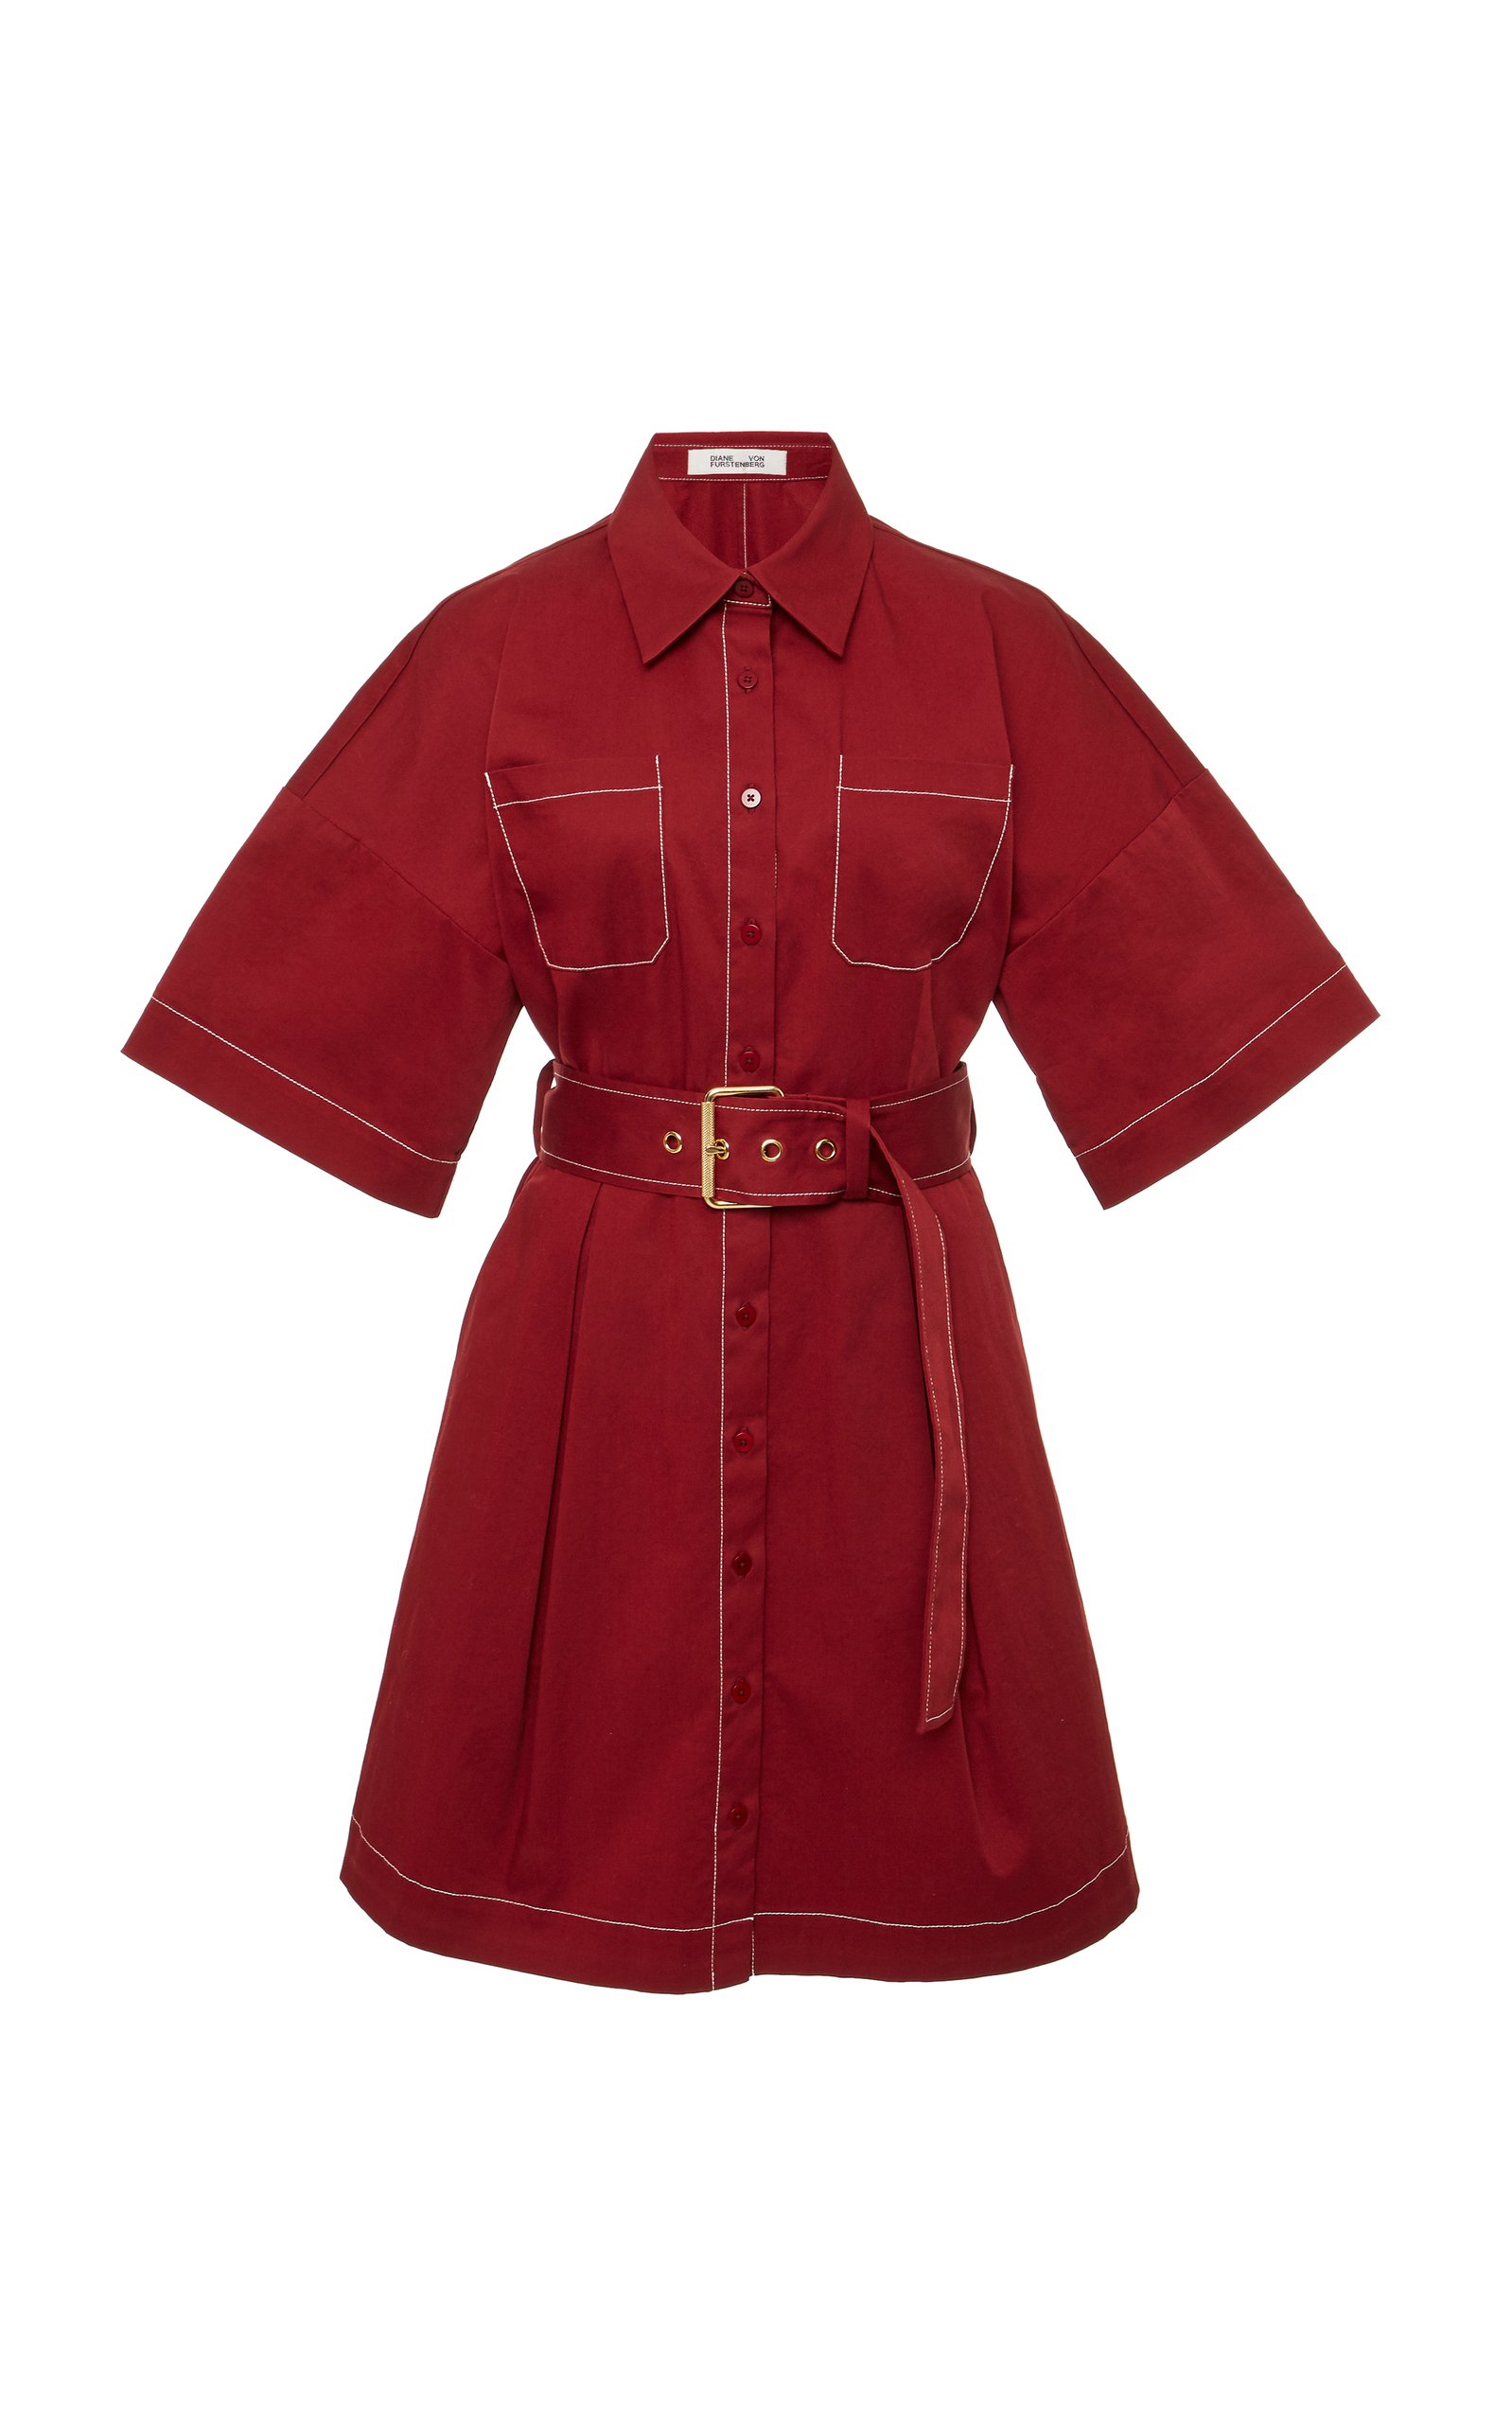 Short Sleeve Button Up Belted Shirt Dress in Red